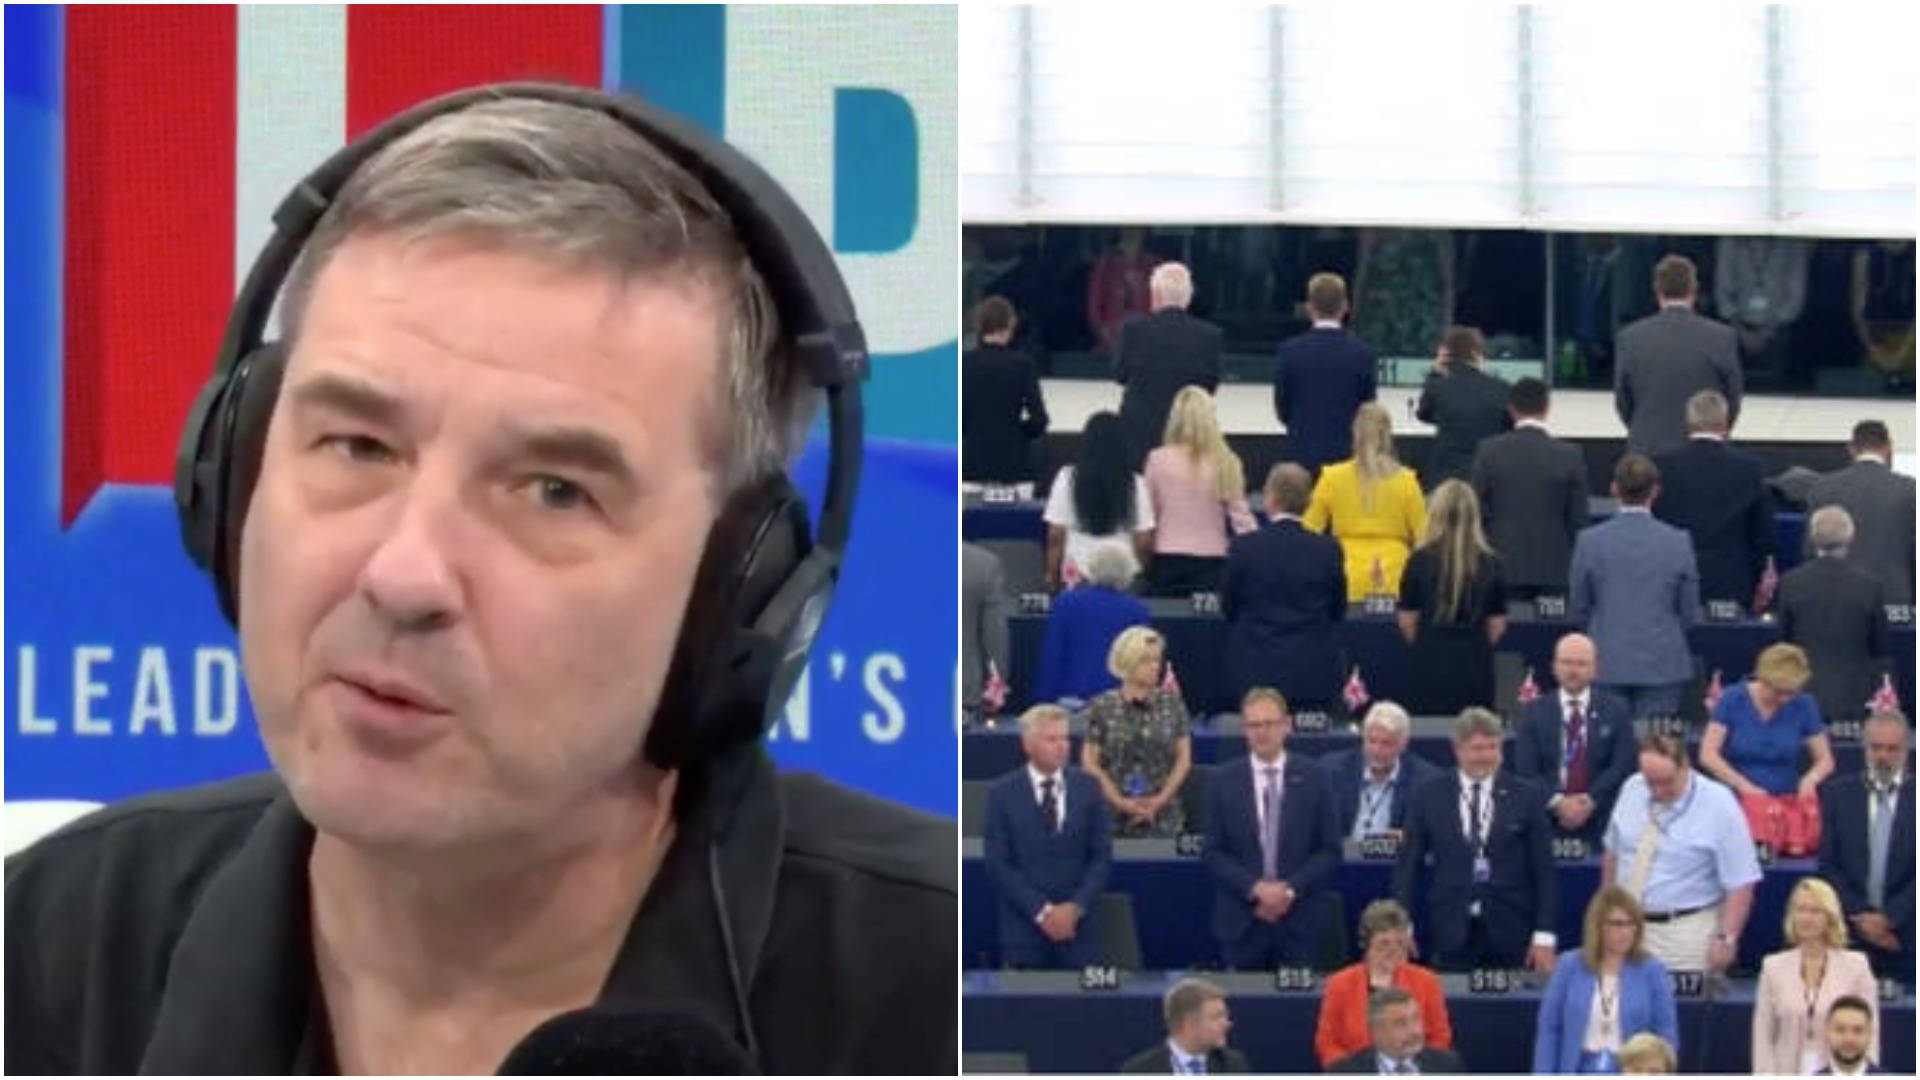 This Debate About Brexit Ended Up With Two MEPs In A Slanging Match